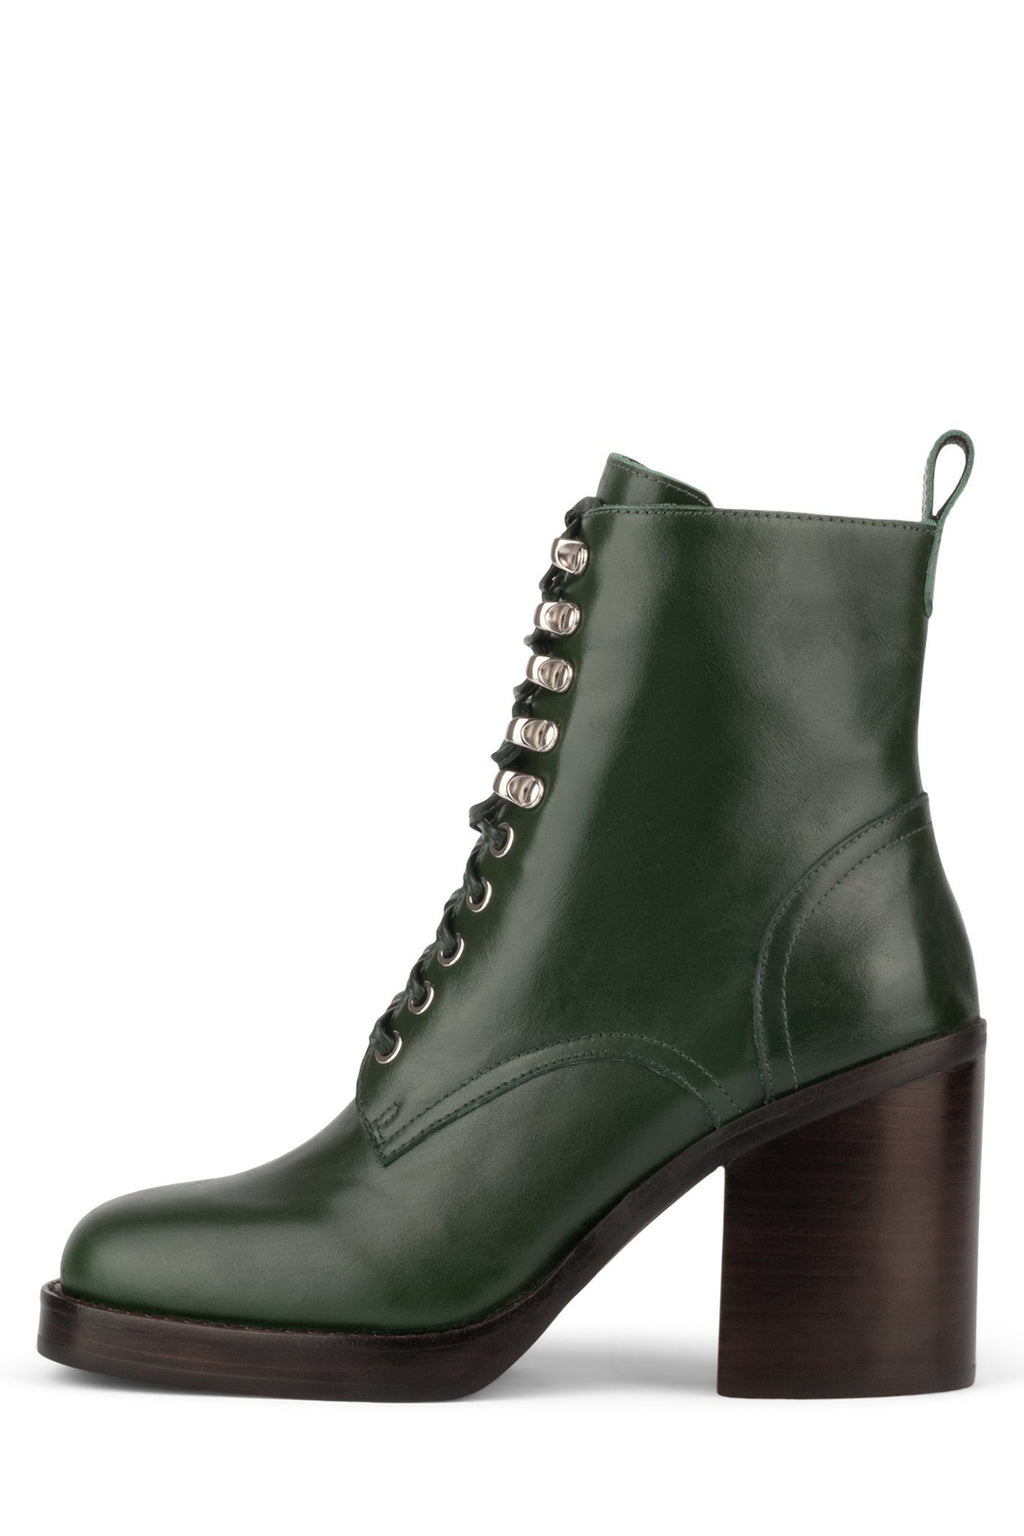 DOTTI Heeled Boot YYH Dark Green 6